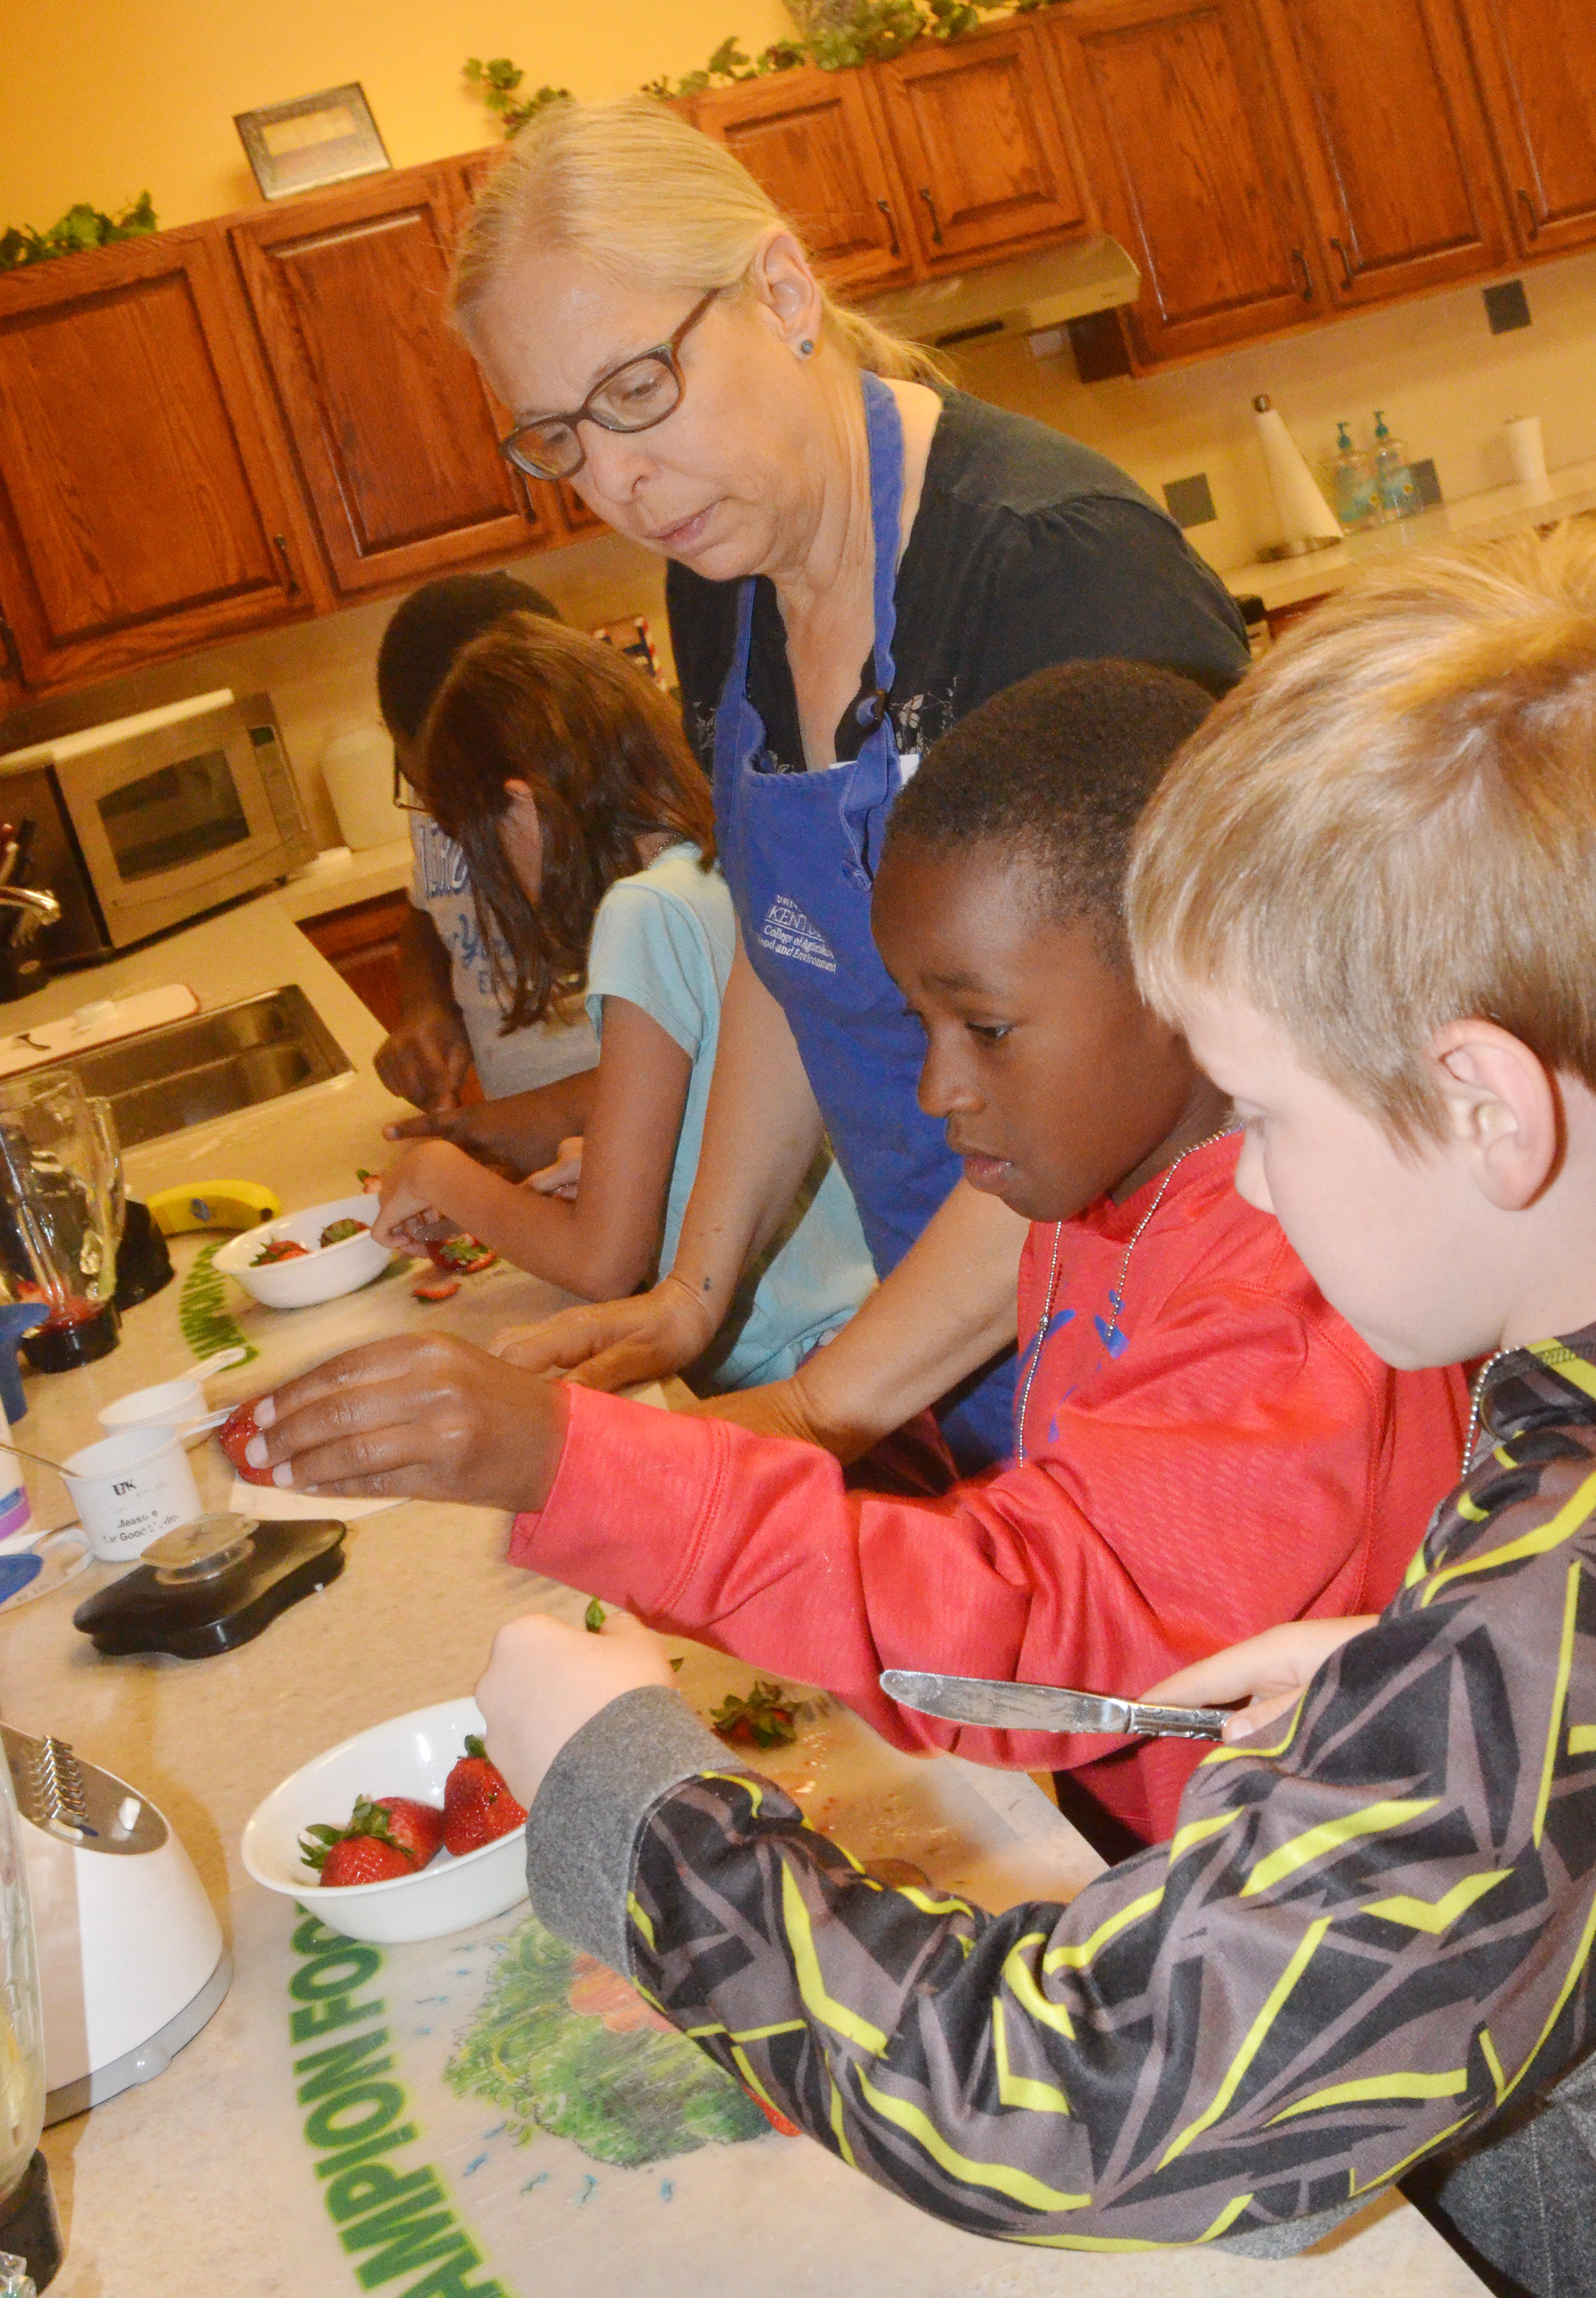 Angie Freeman, expanded foods and nutrition program assistant at Taylor County Extension Office, helps CES Wings Express students John Gholston, center, and Connor Coots, third-graders, prepare fruit as they make a healthy snack.